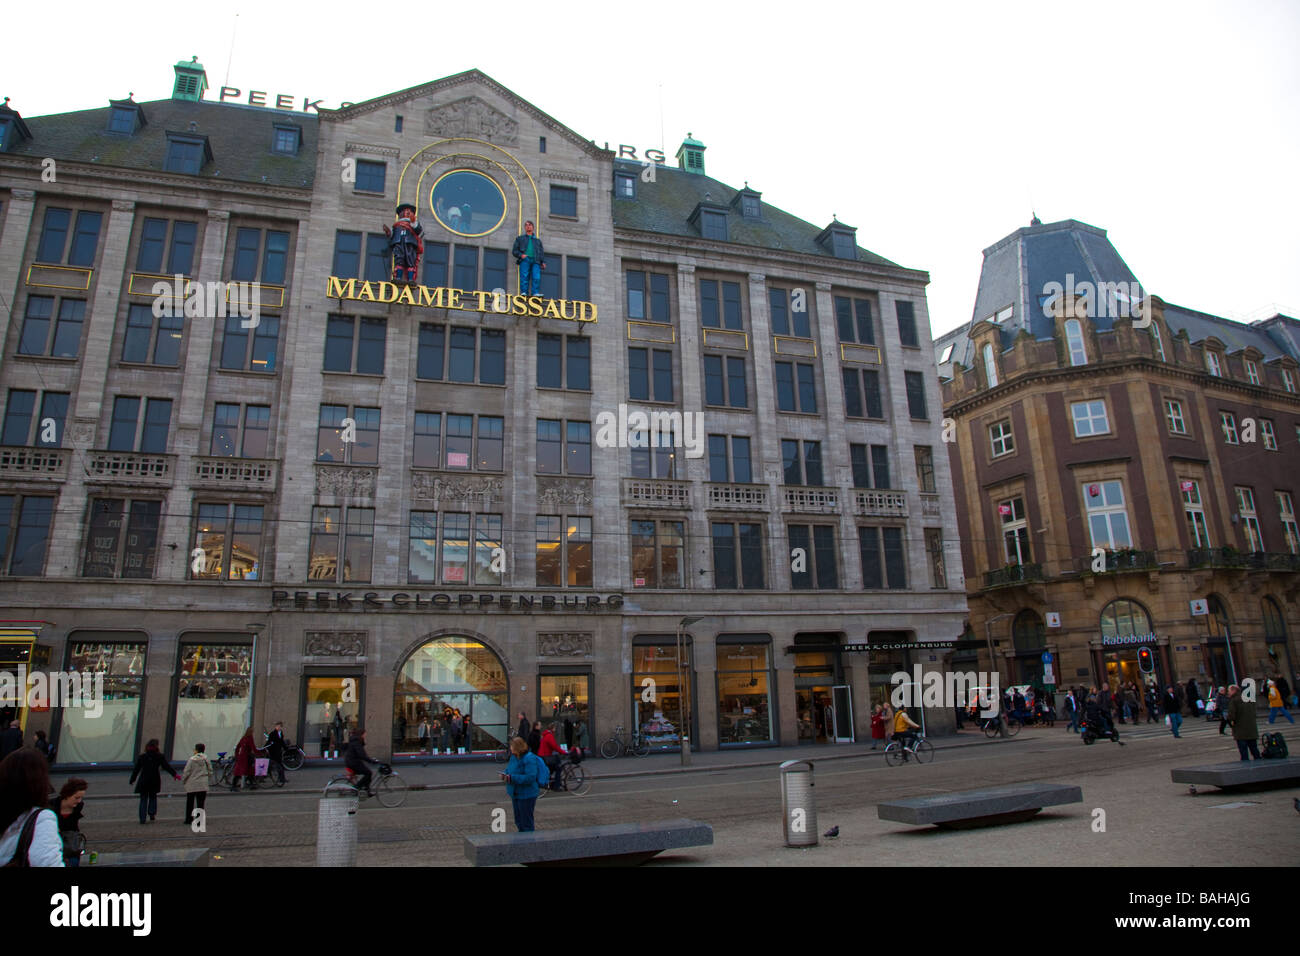 Facade of the Madame Tussaud Museum in The City of Amsterdam Netherlands - Stock Image